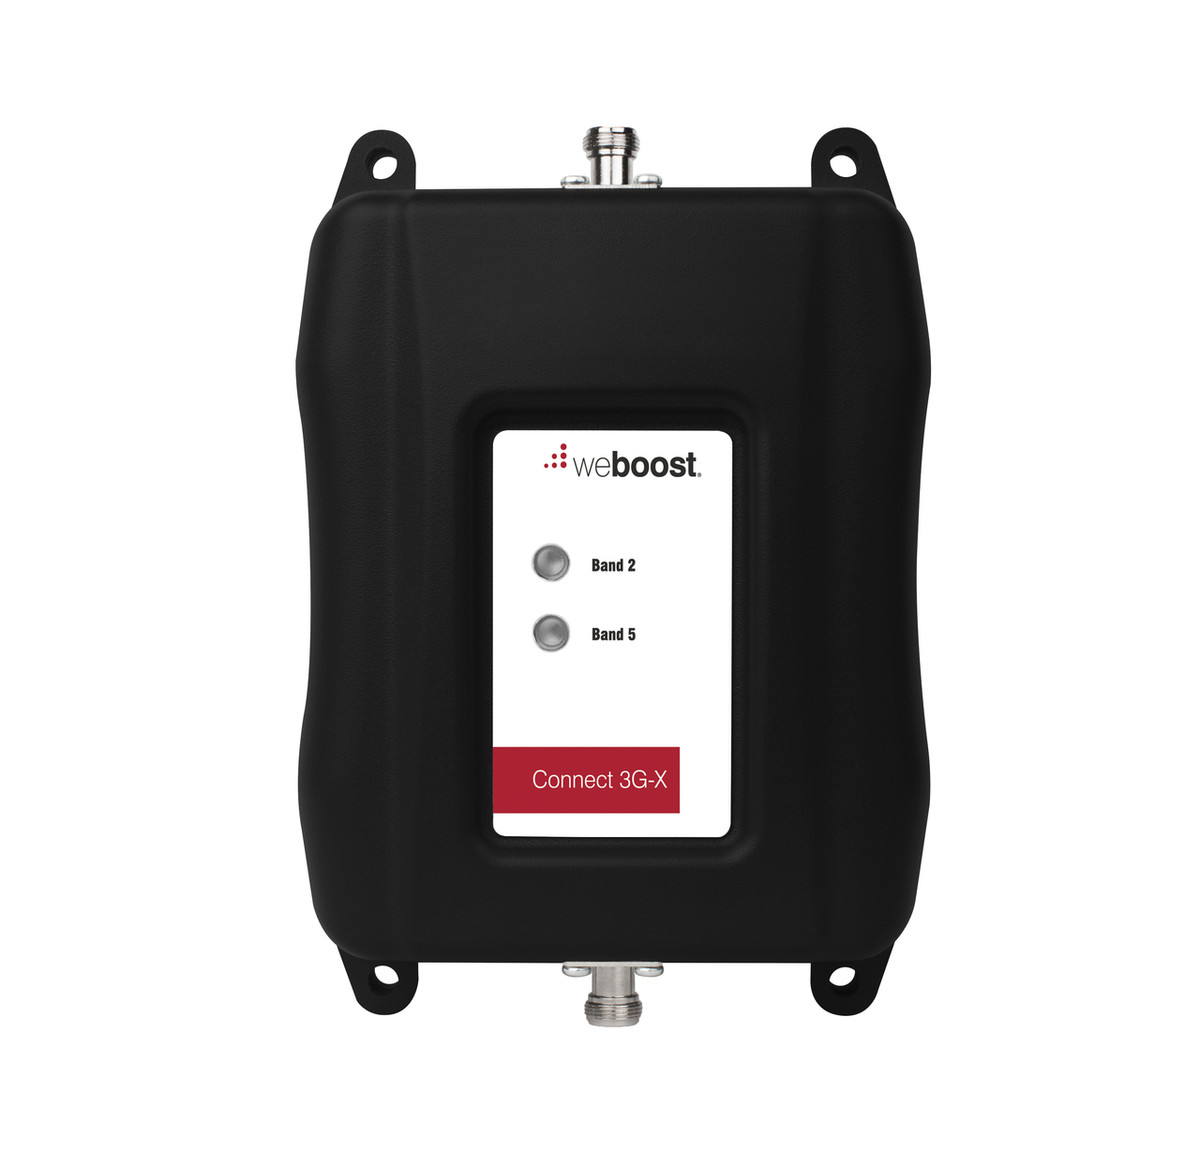 weBoost Connect 3G-X Cell Phone Signal Booster | 470105 Amplifier